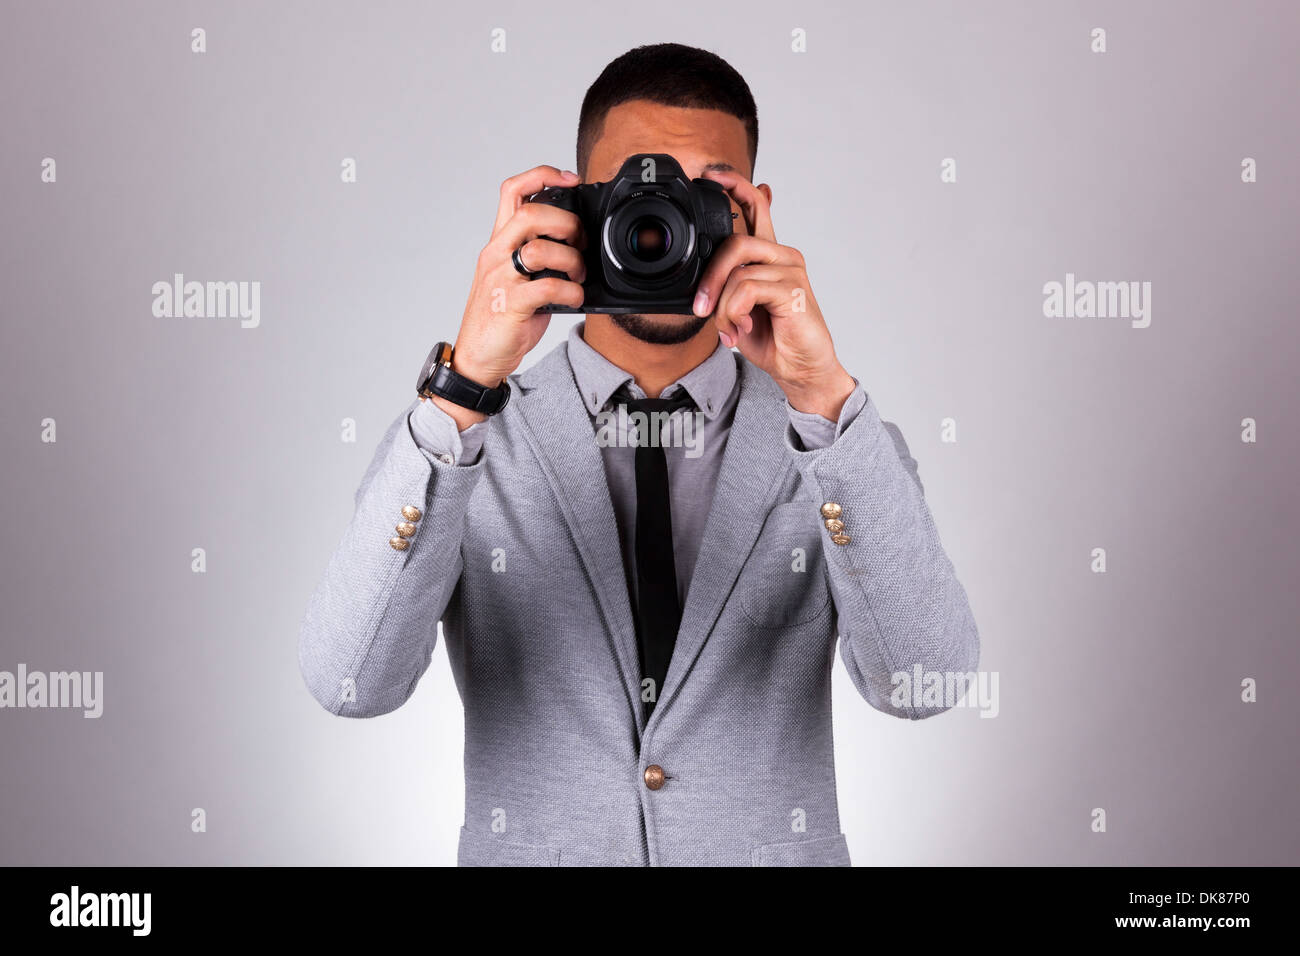 African american photographer holding a dslr camera, over gray background - Black people - Stock Image